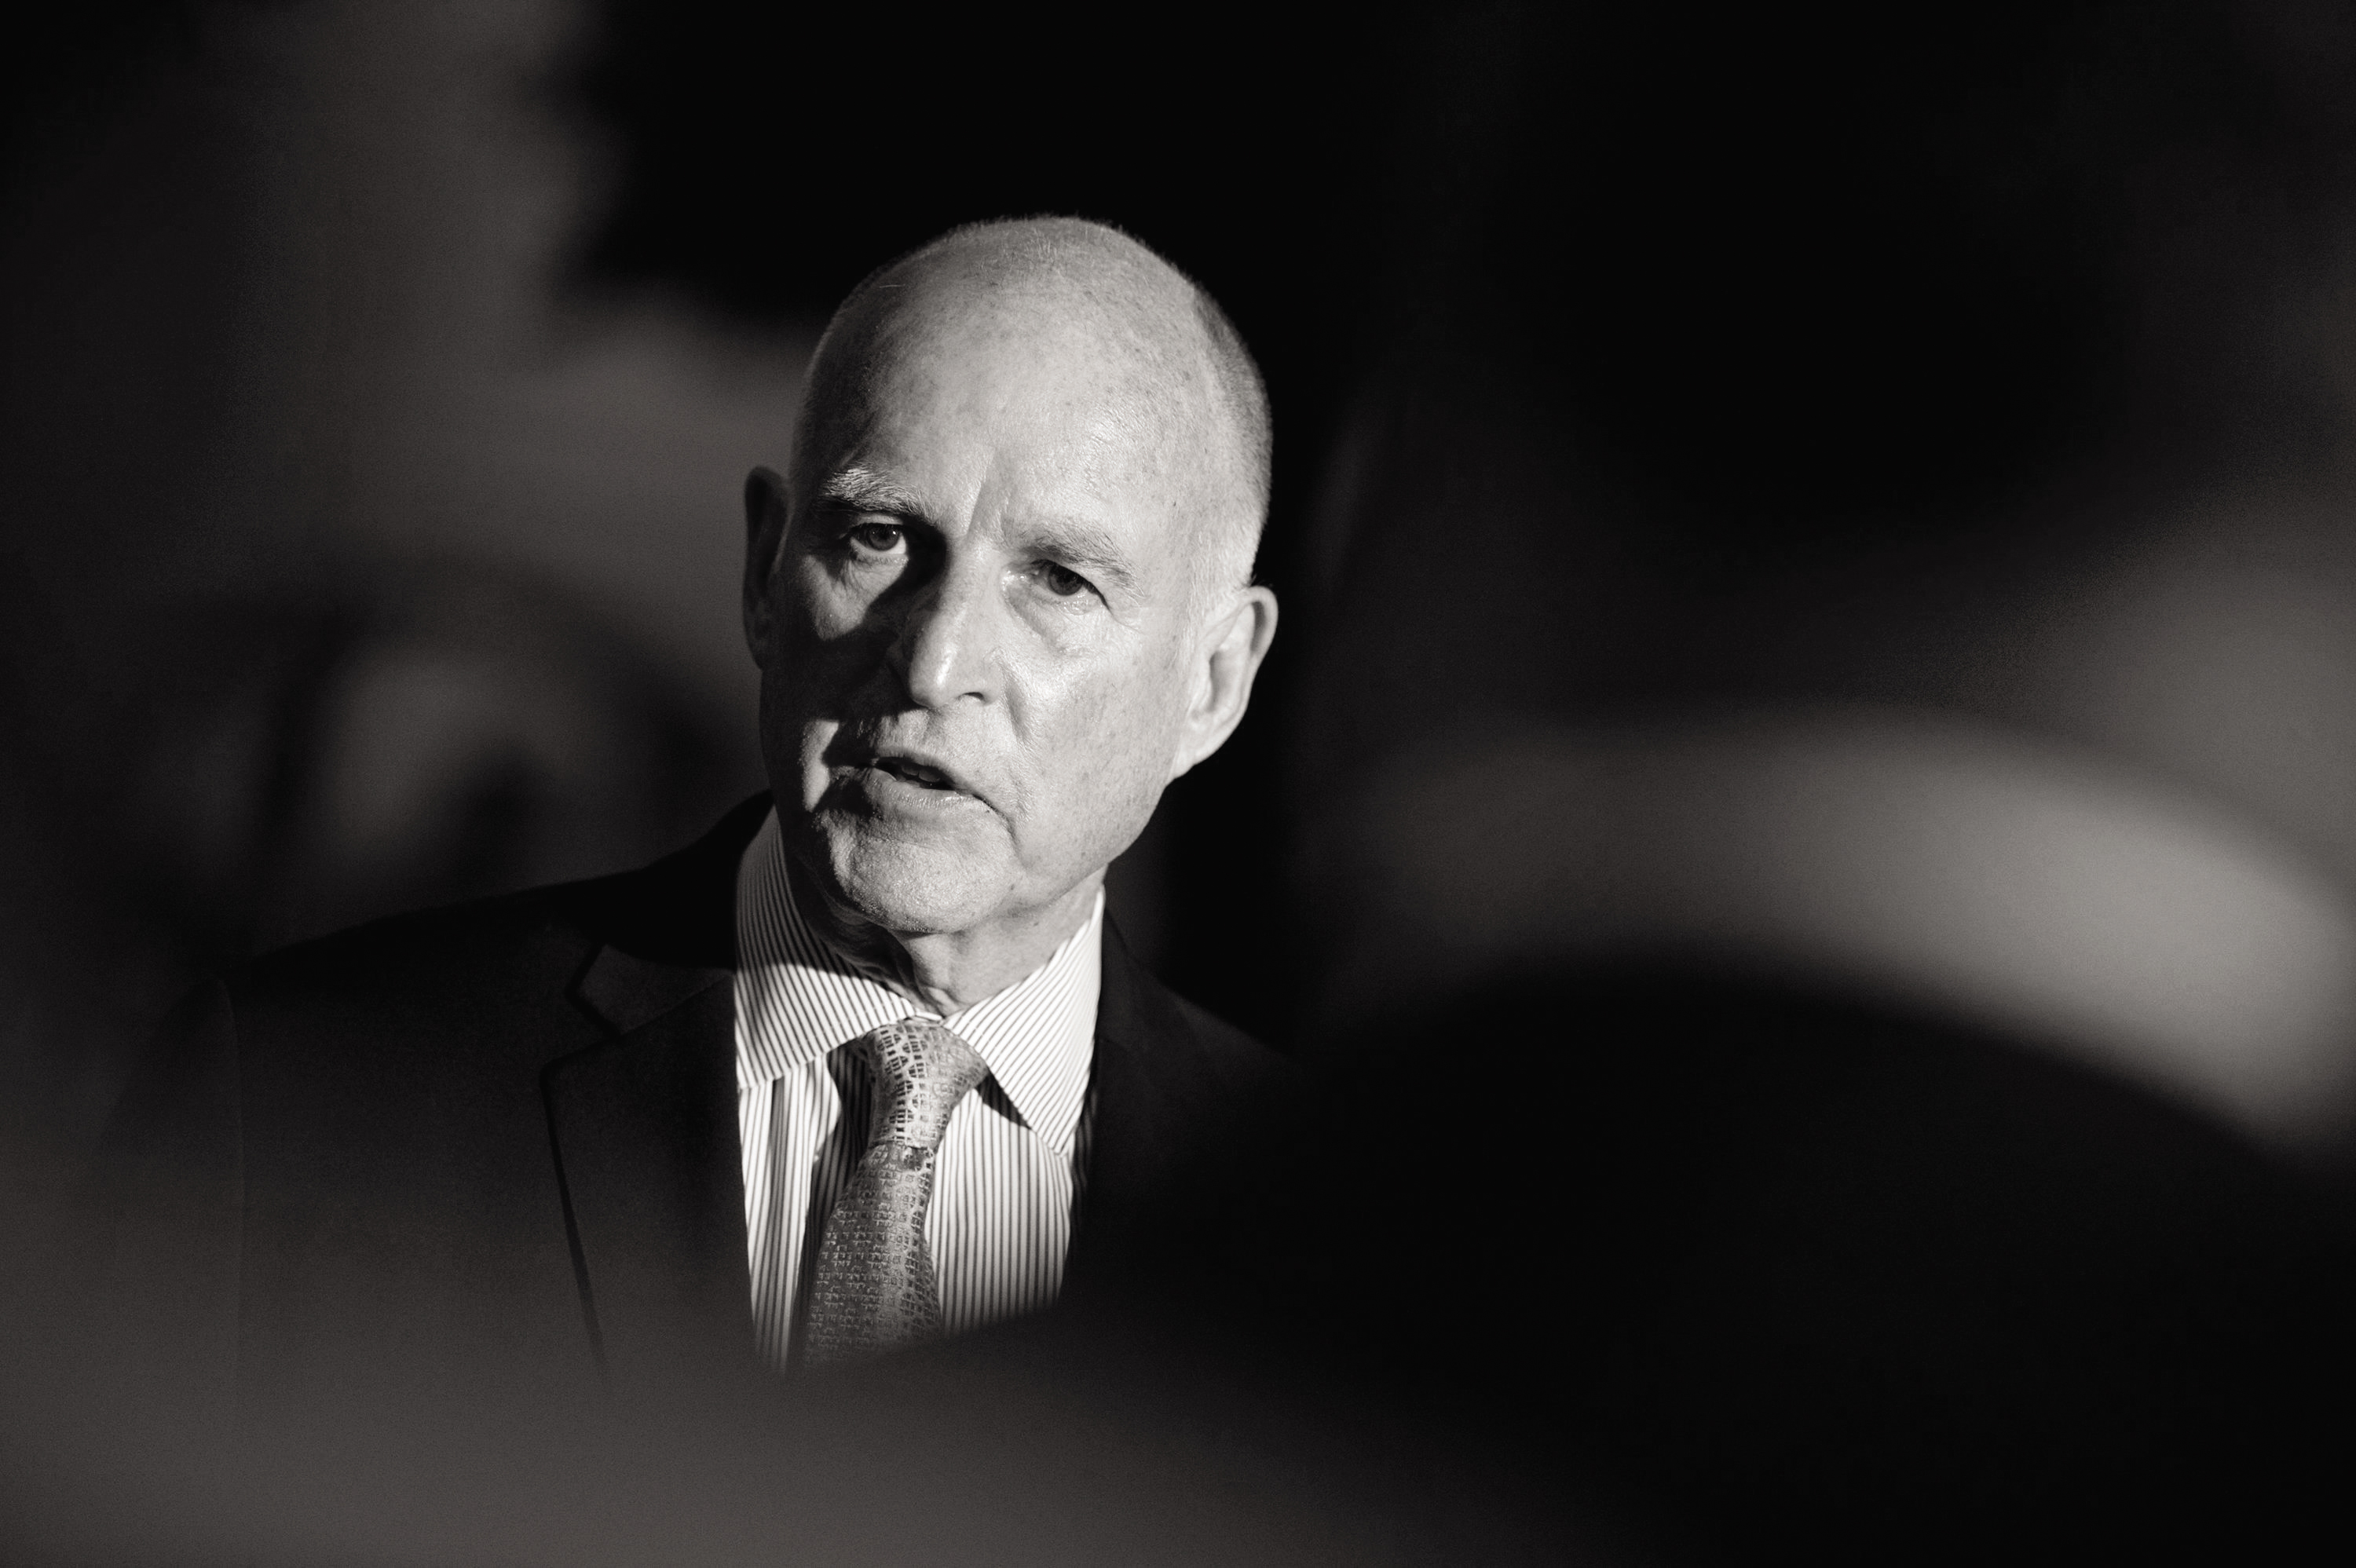 Gov. Jerry Brown talks to reporters outside the Old Governors Mansion on election night in Sacramento, Calif., Tuesday, June 3, 2014. (Jose Luis Villegas/Sacramento Bee/MCT)